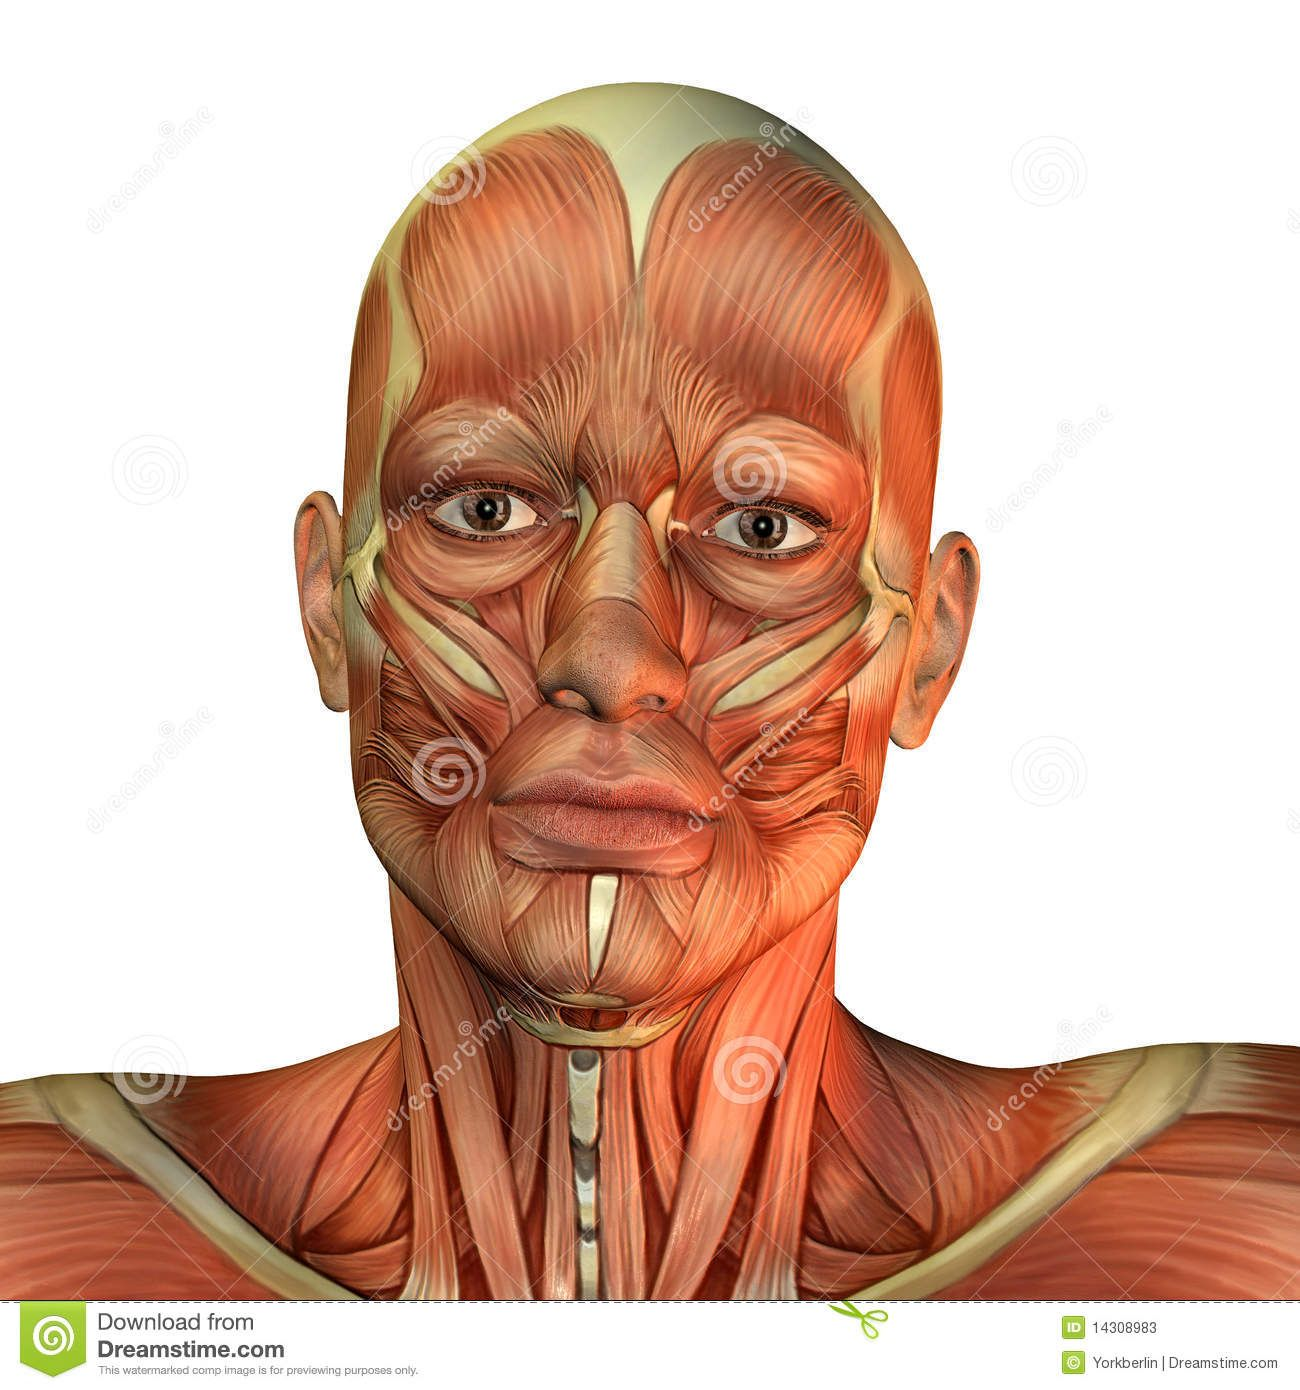 Muscle Man's Face Front View - Download From Over 37 Million High Quality Stock Photos, Images, Vectors. Sign up for FREE today. Image: 14308983